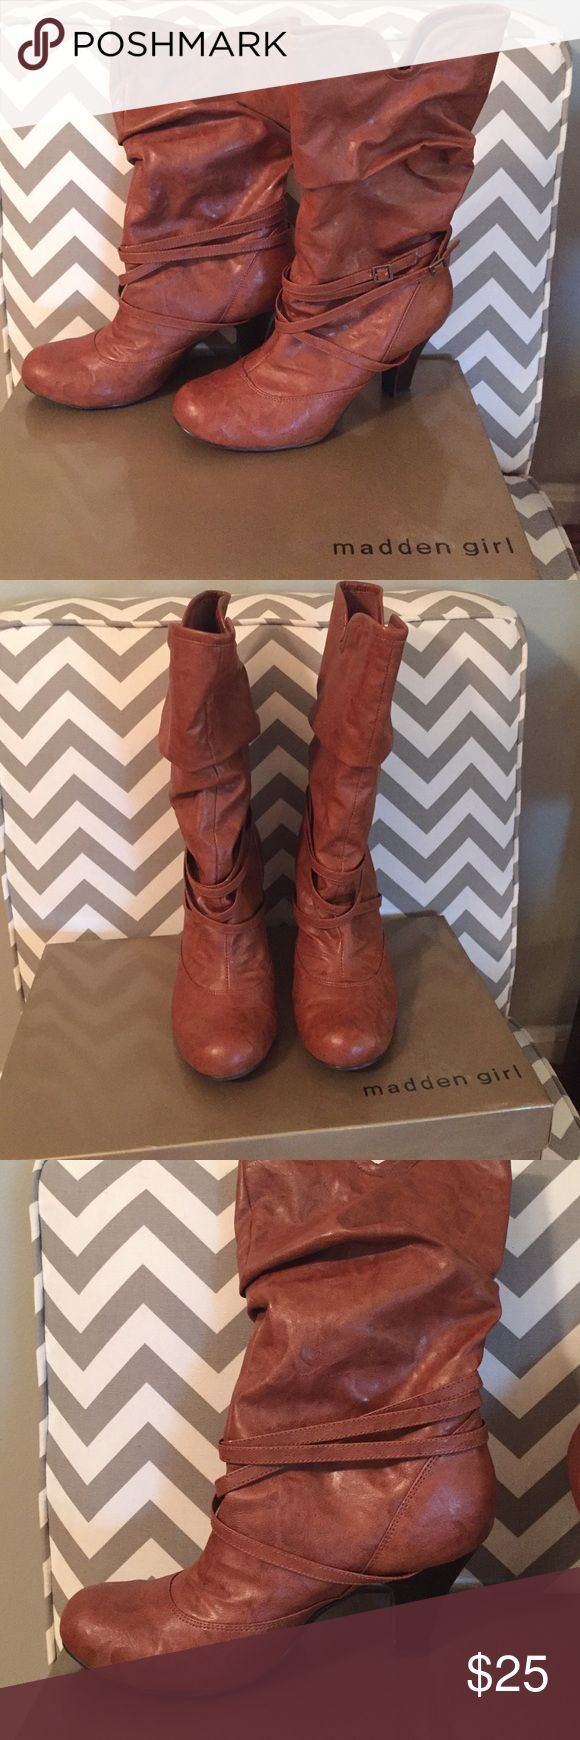 Madden Girl Tan boots size 8.5 Perfect for fall 🍁. Beautiful tan boots made by Madden Girl. Round toe, 3 inch heel, skinny leather buckle detail. Size 8.5. Worn only 1 time. In almost perfect condition and comes with box. Madden Girl Shoes Heeled Boots